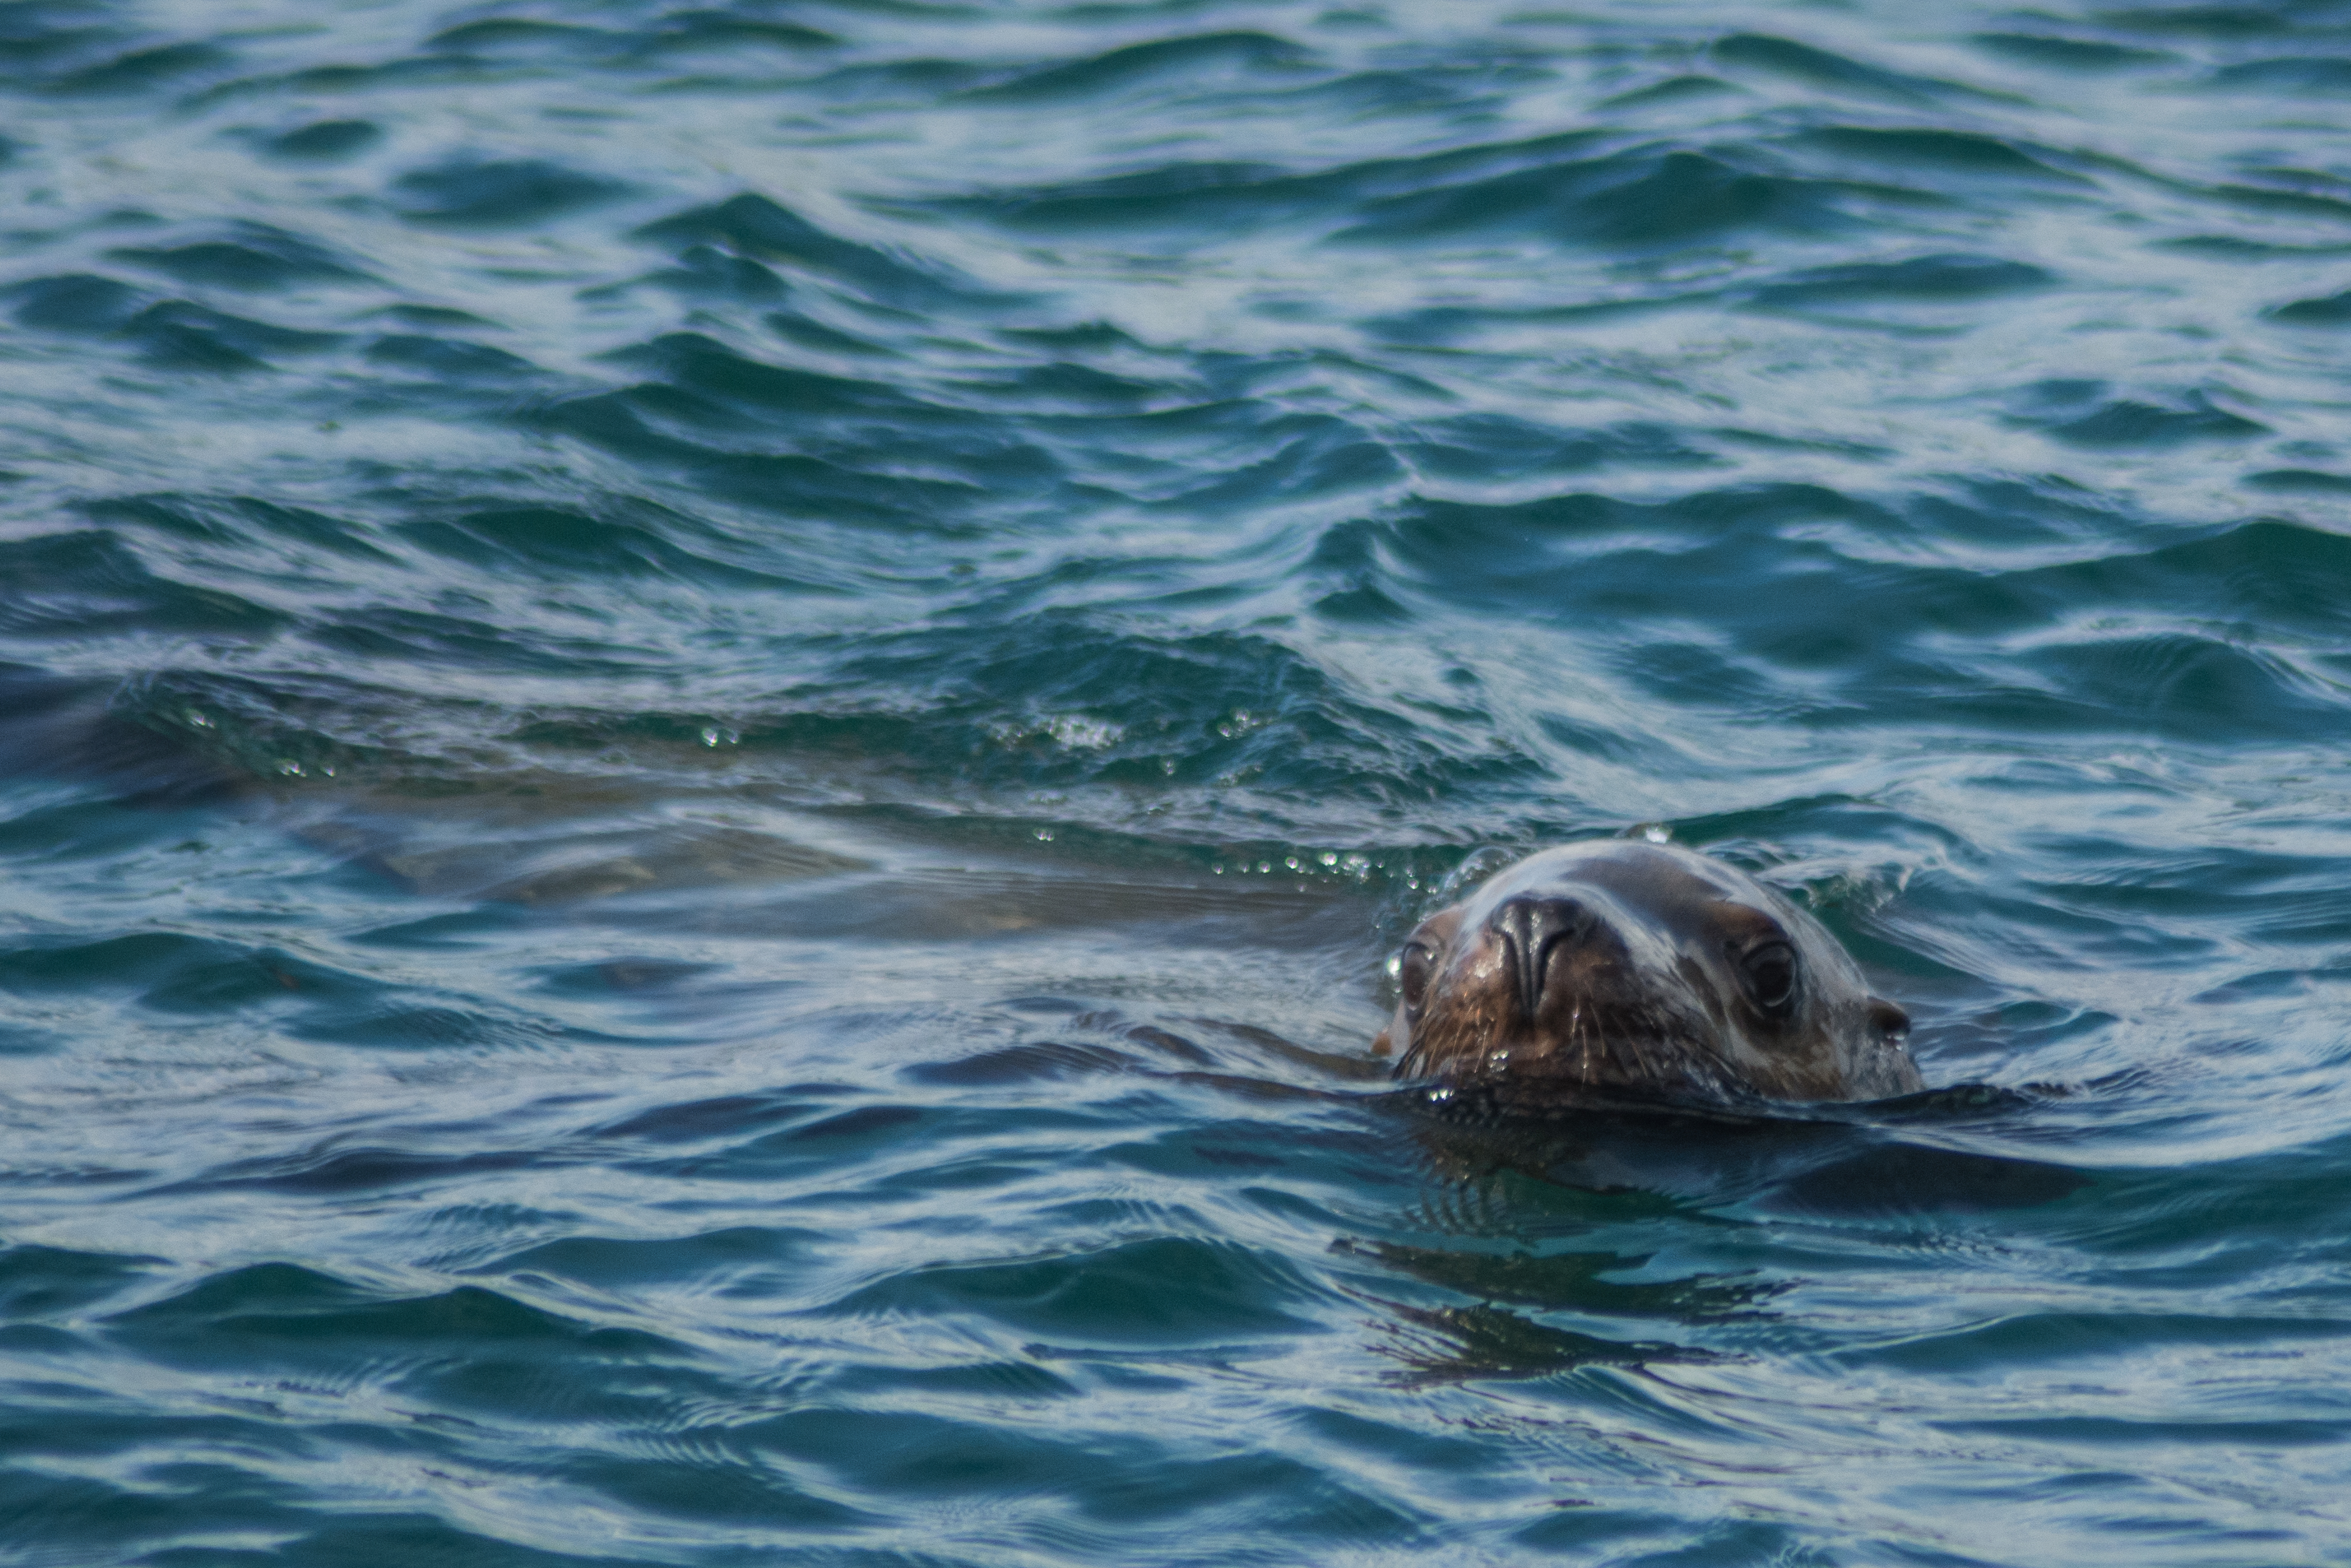 Northern Sea Lion at the surface